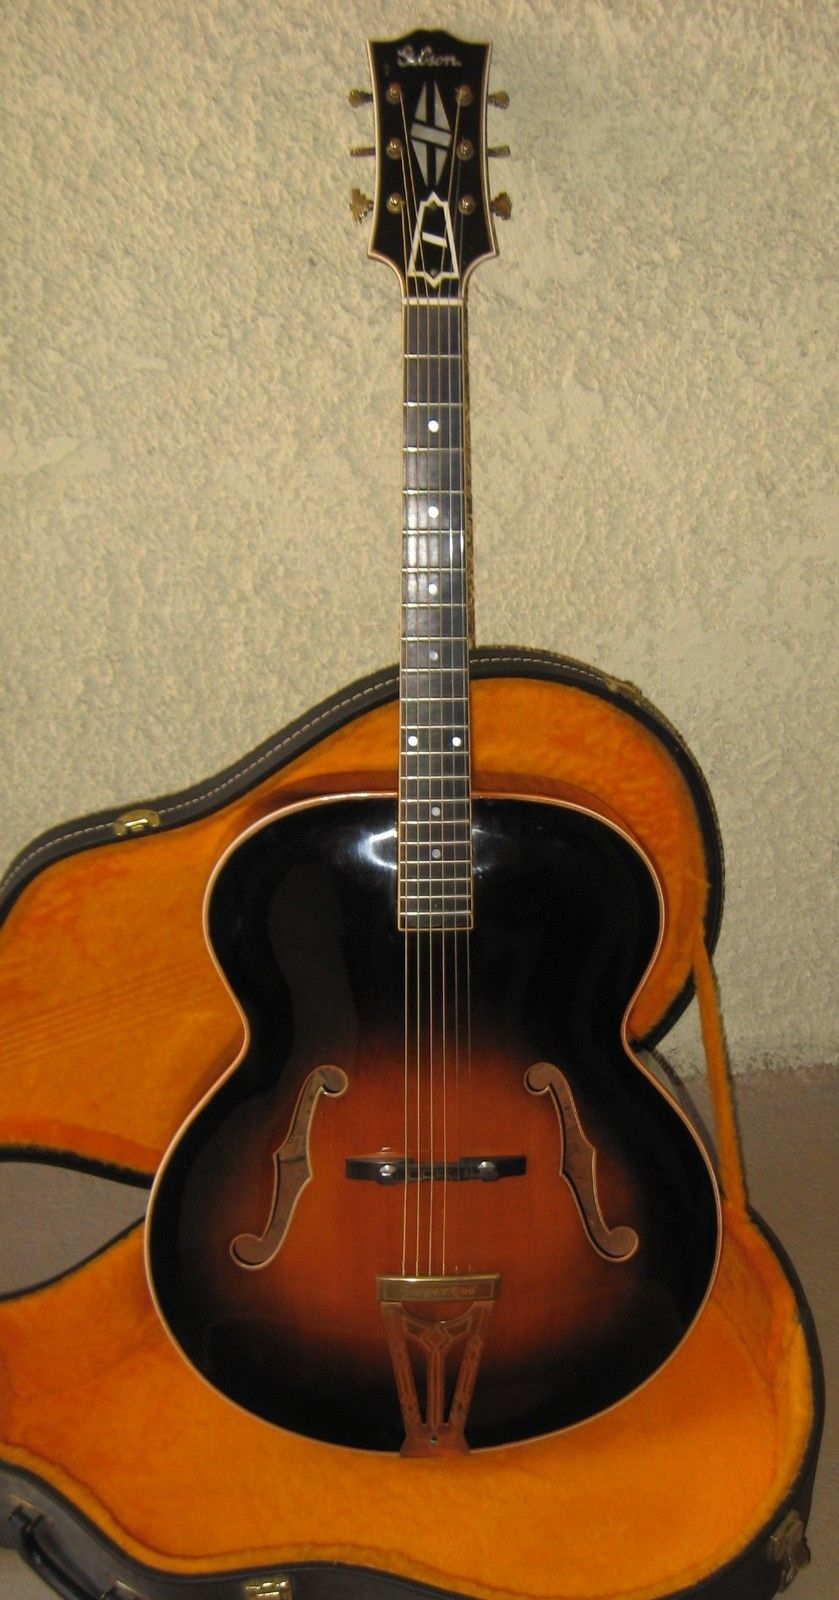 details about 1939 gibson super 400 18 archtop acoustic guitar no reserve archtop jazz. Black Bedroom Furniture Sets. Home Design Ideas